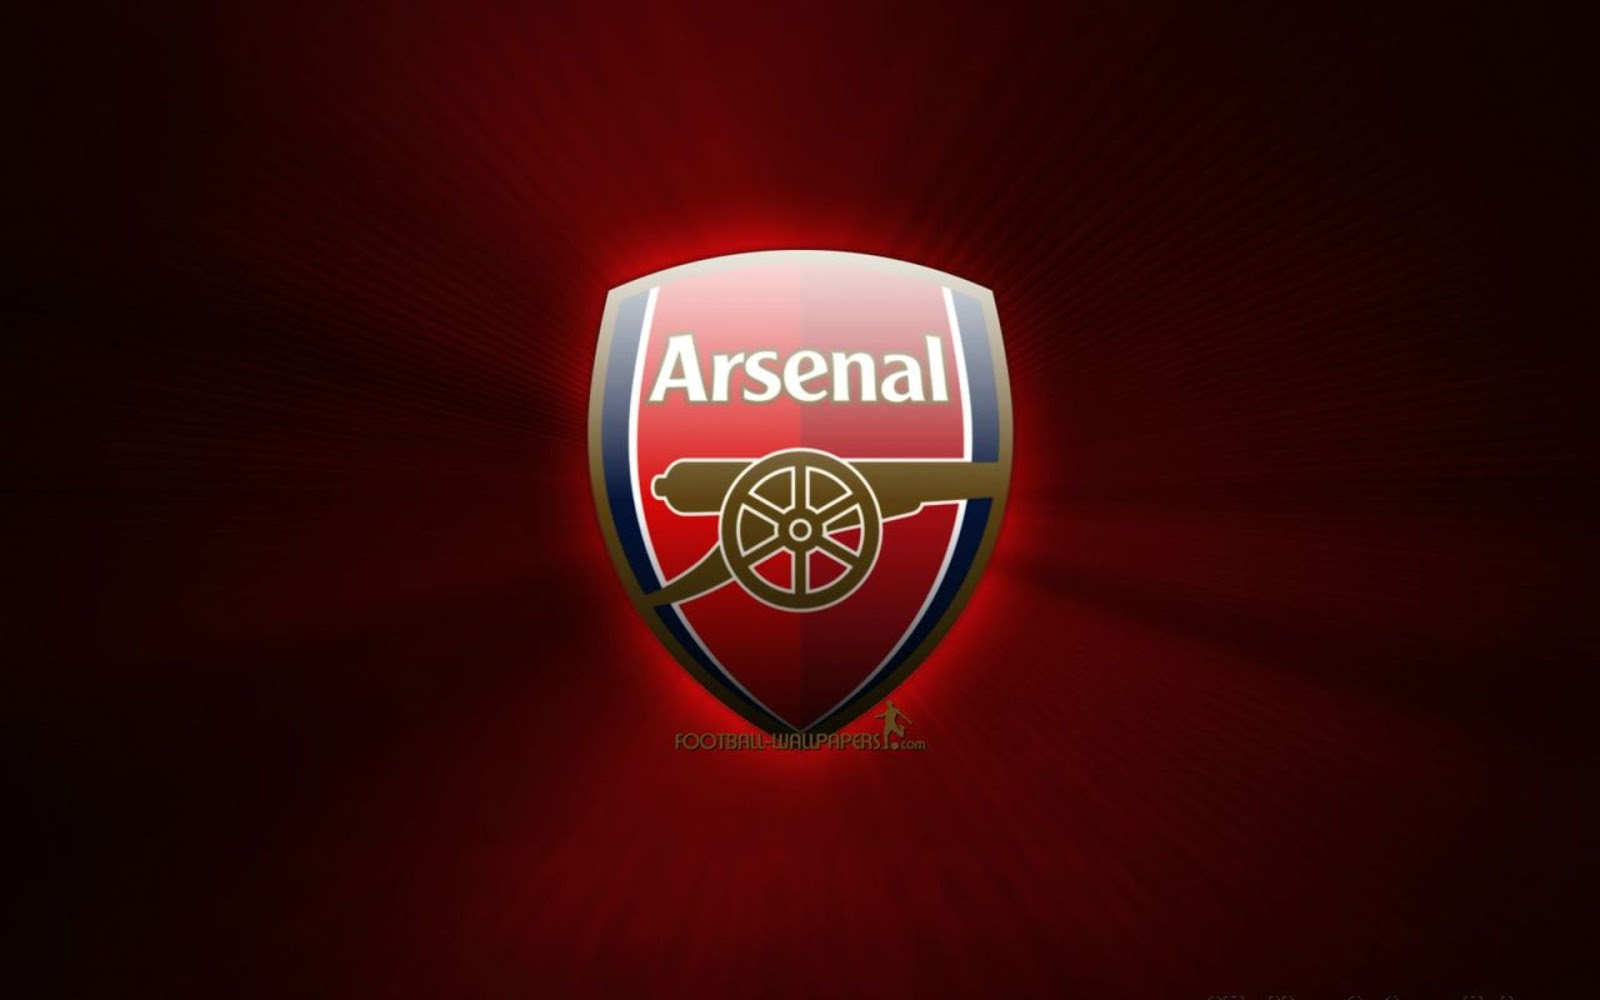 wallpapers hd for mac Arsenal Football Club Logo Wallpaper HD 1600x1000